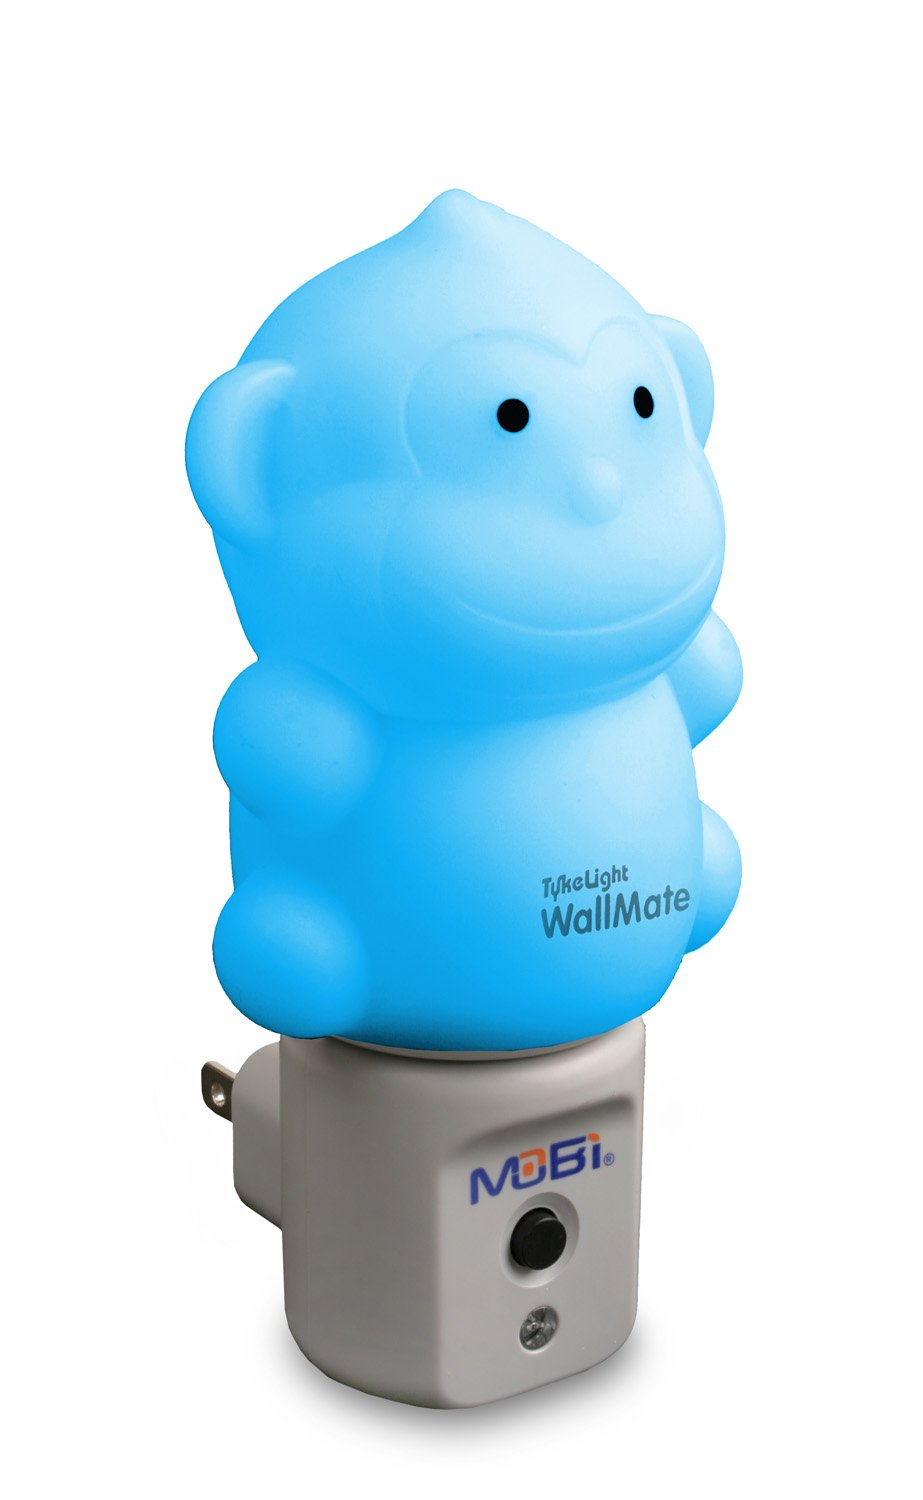 WallMate Cool LED Night Light for Kids, Toddlers & Sleeping Baby - Wall Plug-in Outlet (Hippo) 4